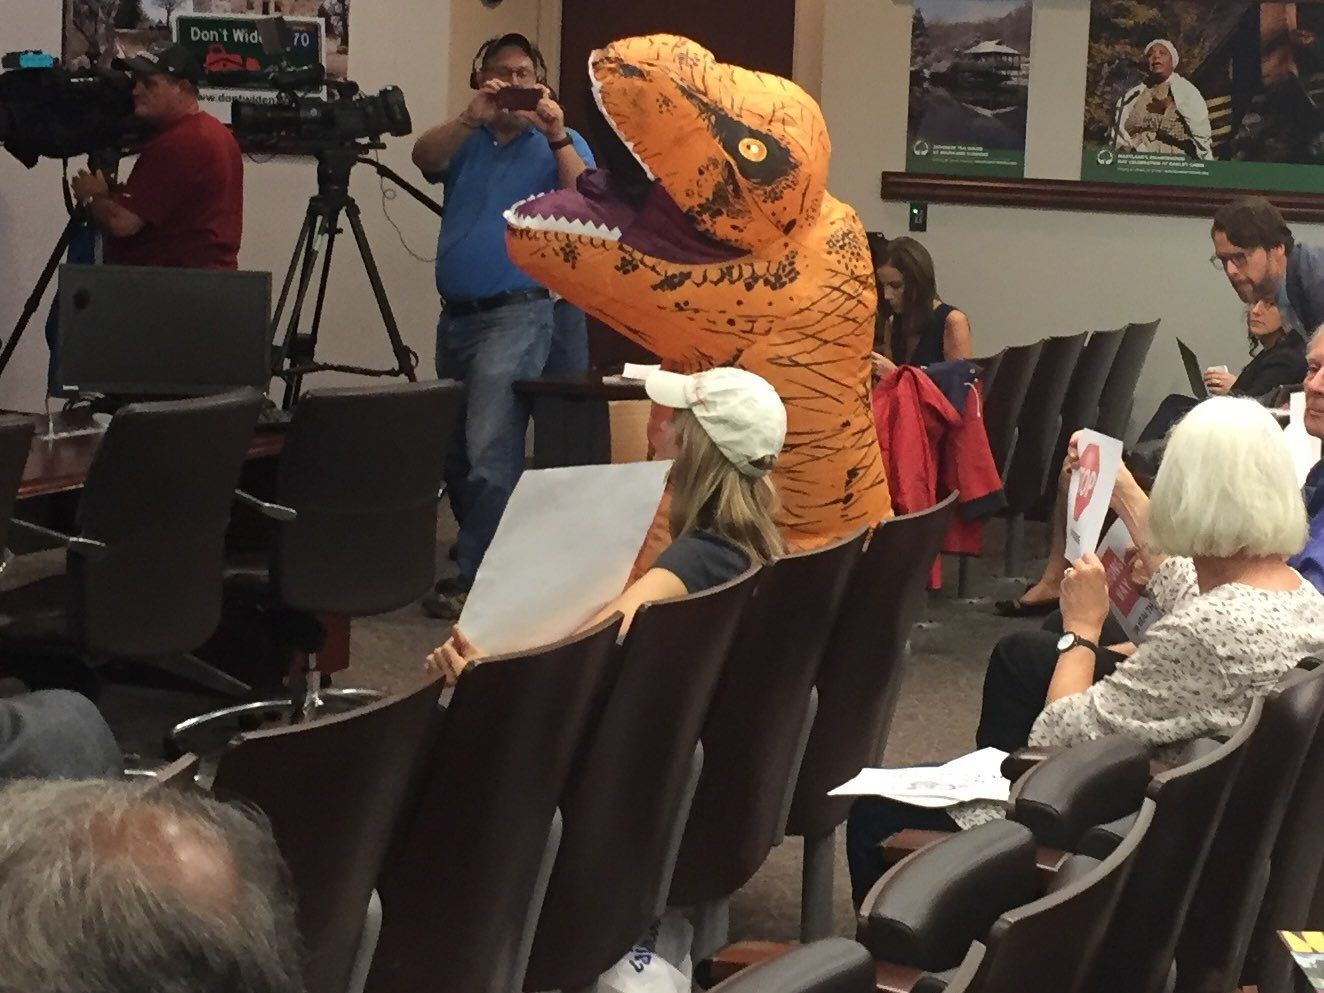 A person dressed as a dinosaur attends a public meeting on the widening of interstates 270 and 495 in Montgomery County on Thursday, Oct. 11, 2018. (WTOP/Mike Murillo)